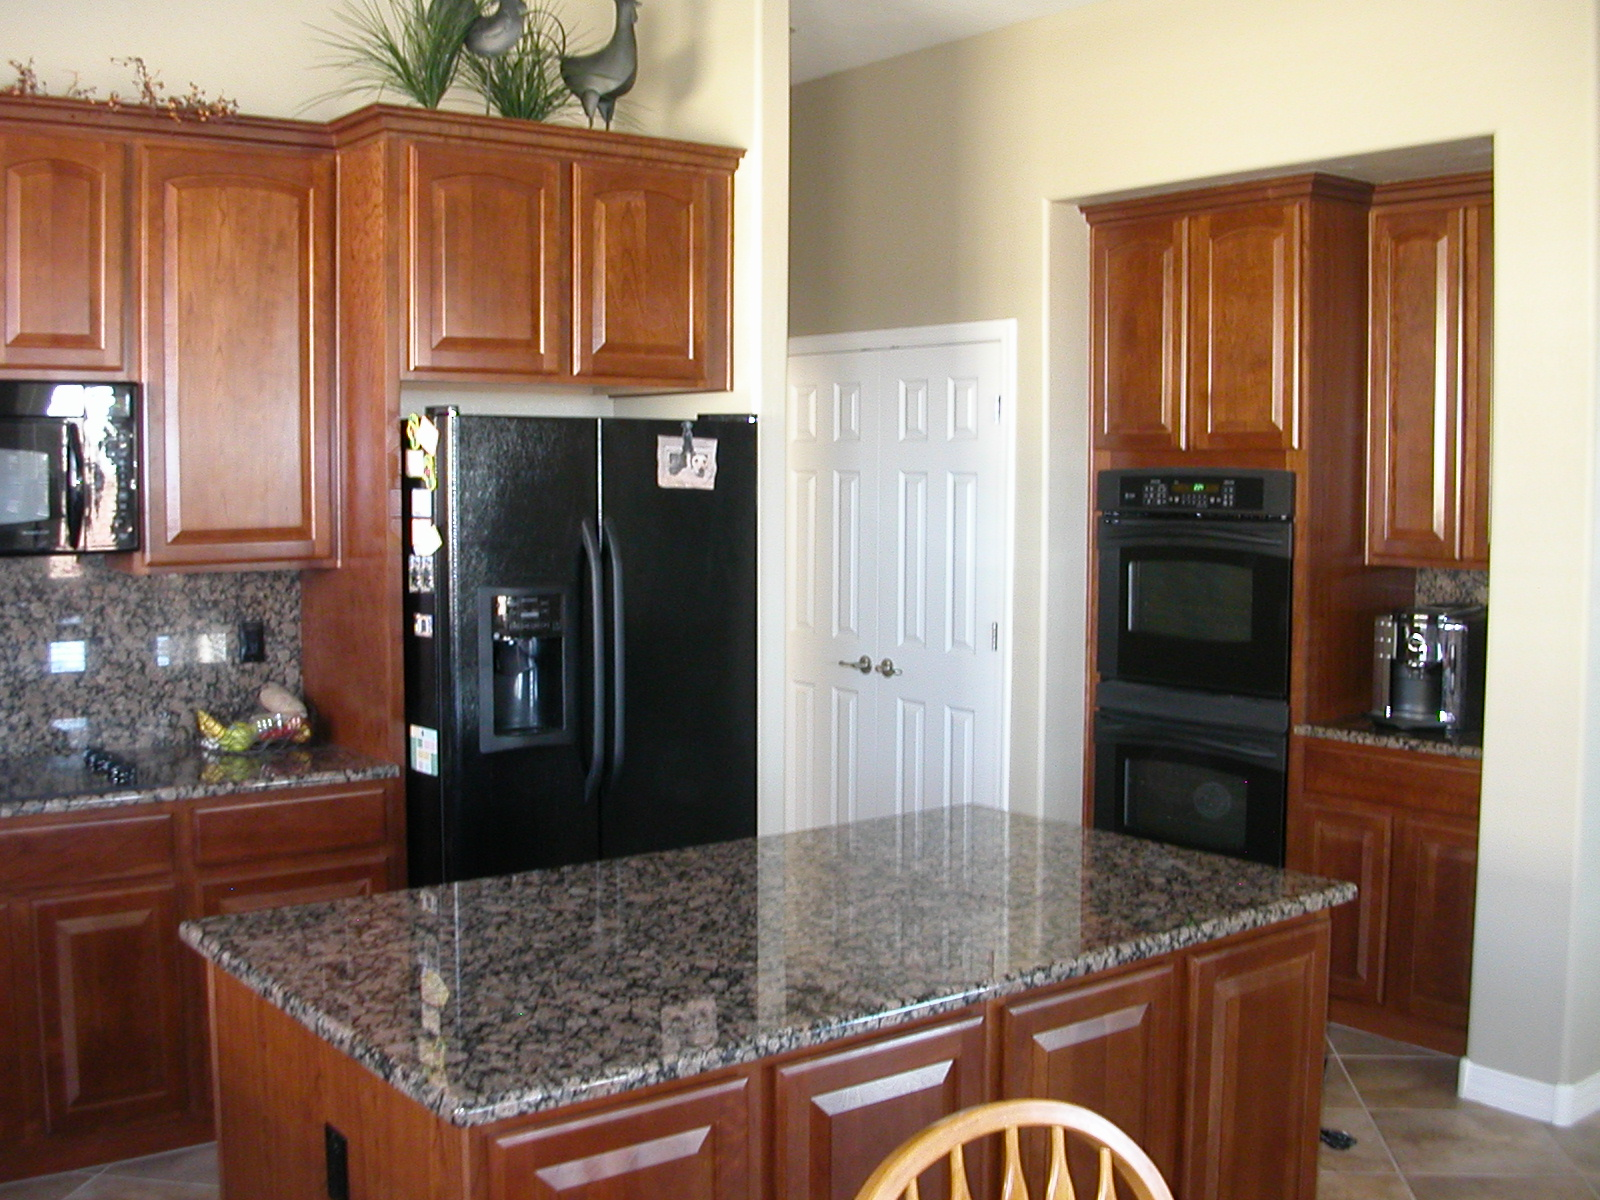 Black Vs Stainless Steel Appliances. 024